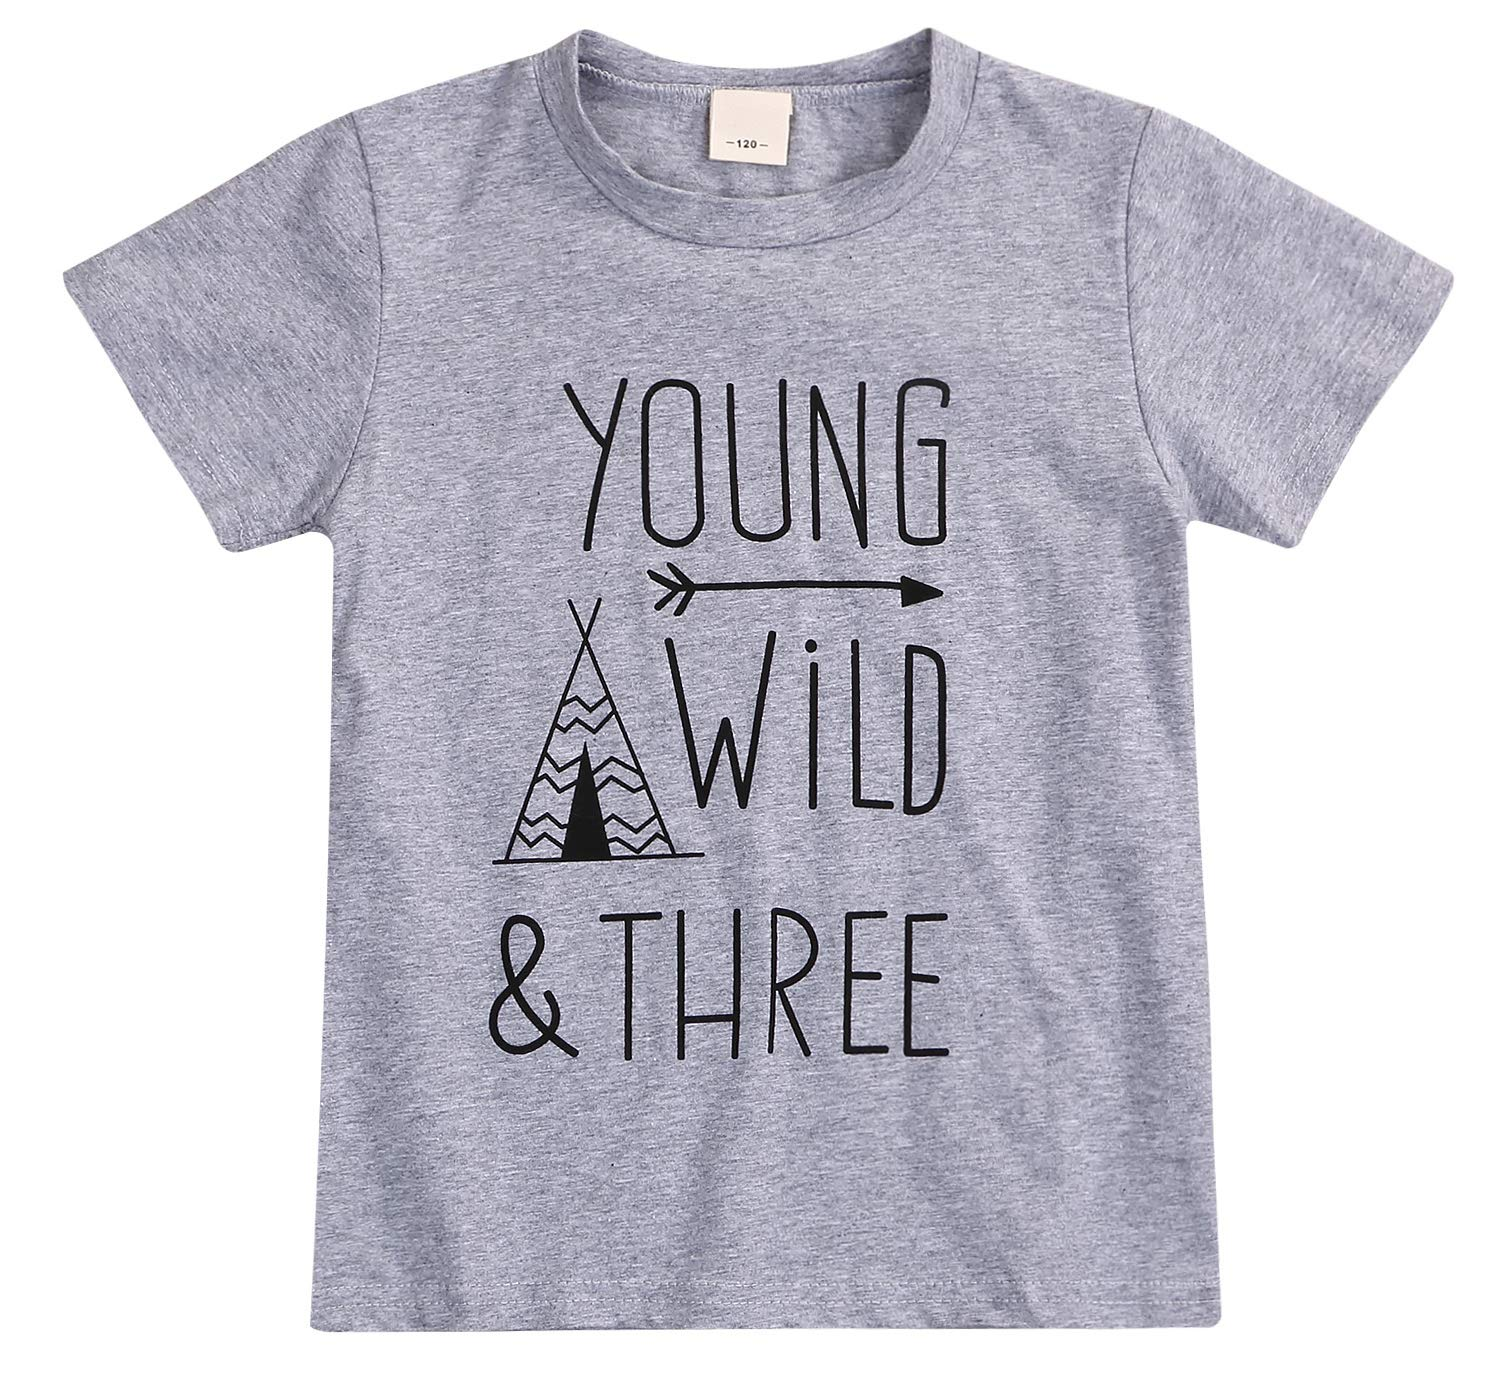 YOUNGER STAR 1PC Children Baby Boy Gray Letter Print Short Sleeve T-Shirt Clothes Outfit by YOUNGER STAR